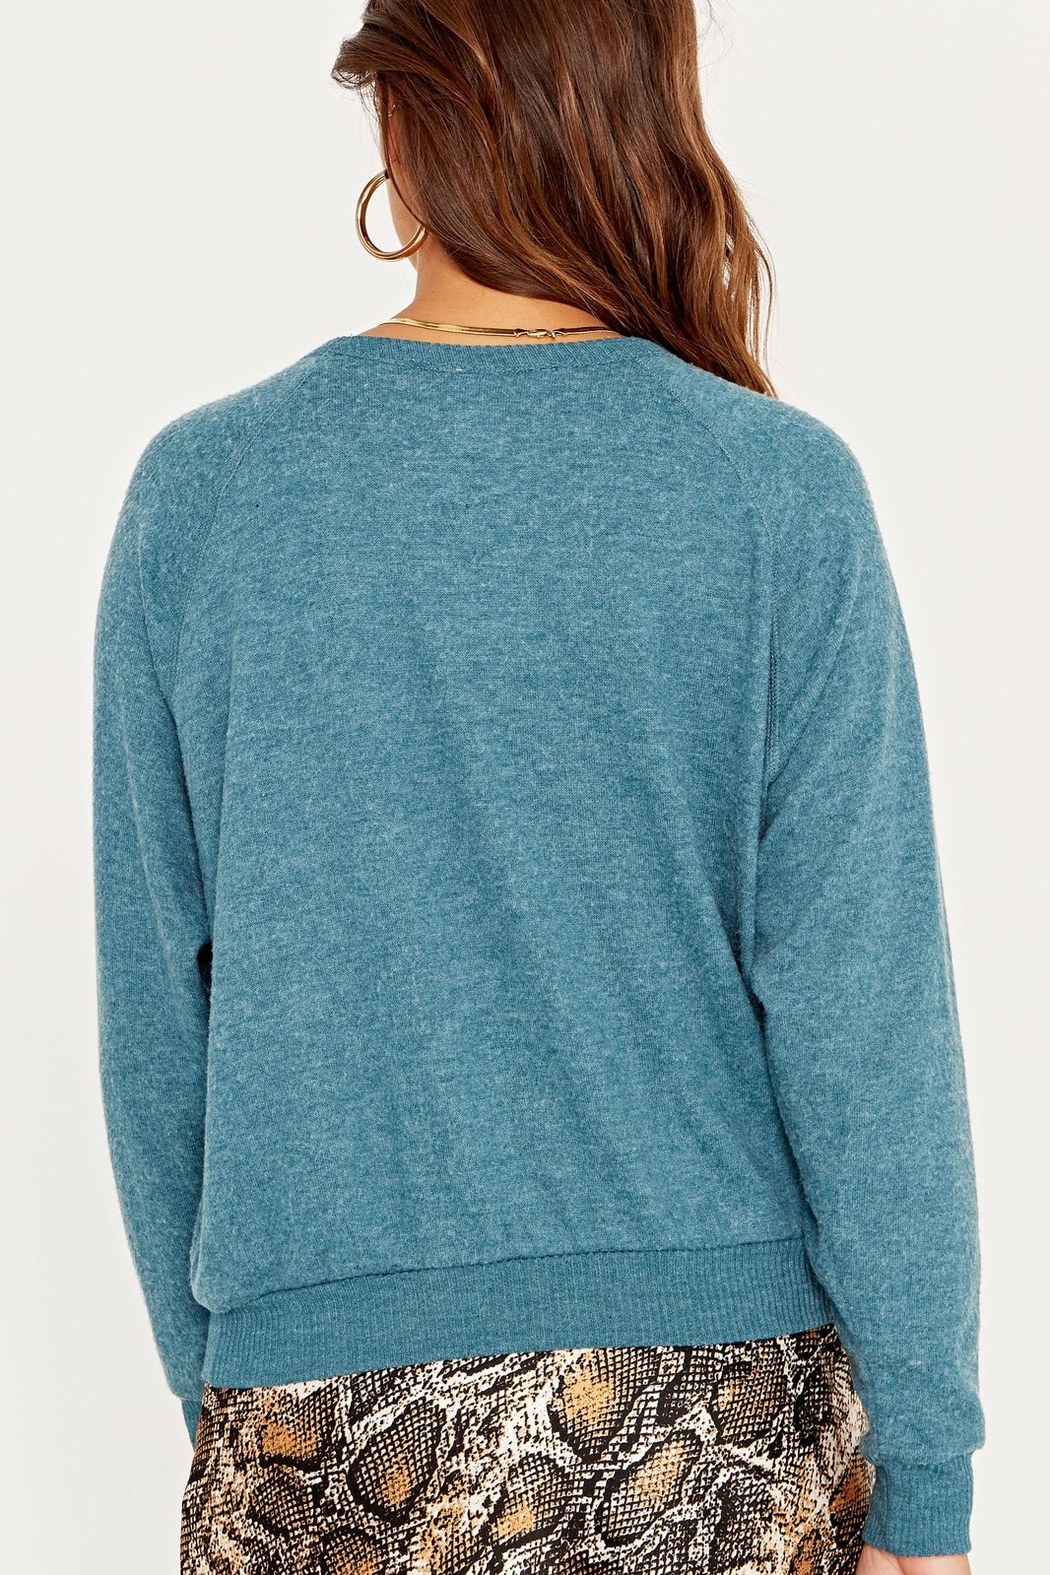 Project Social T Thankful Cozy Pullover Sweater - Side Cropped Image